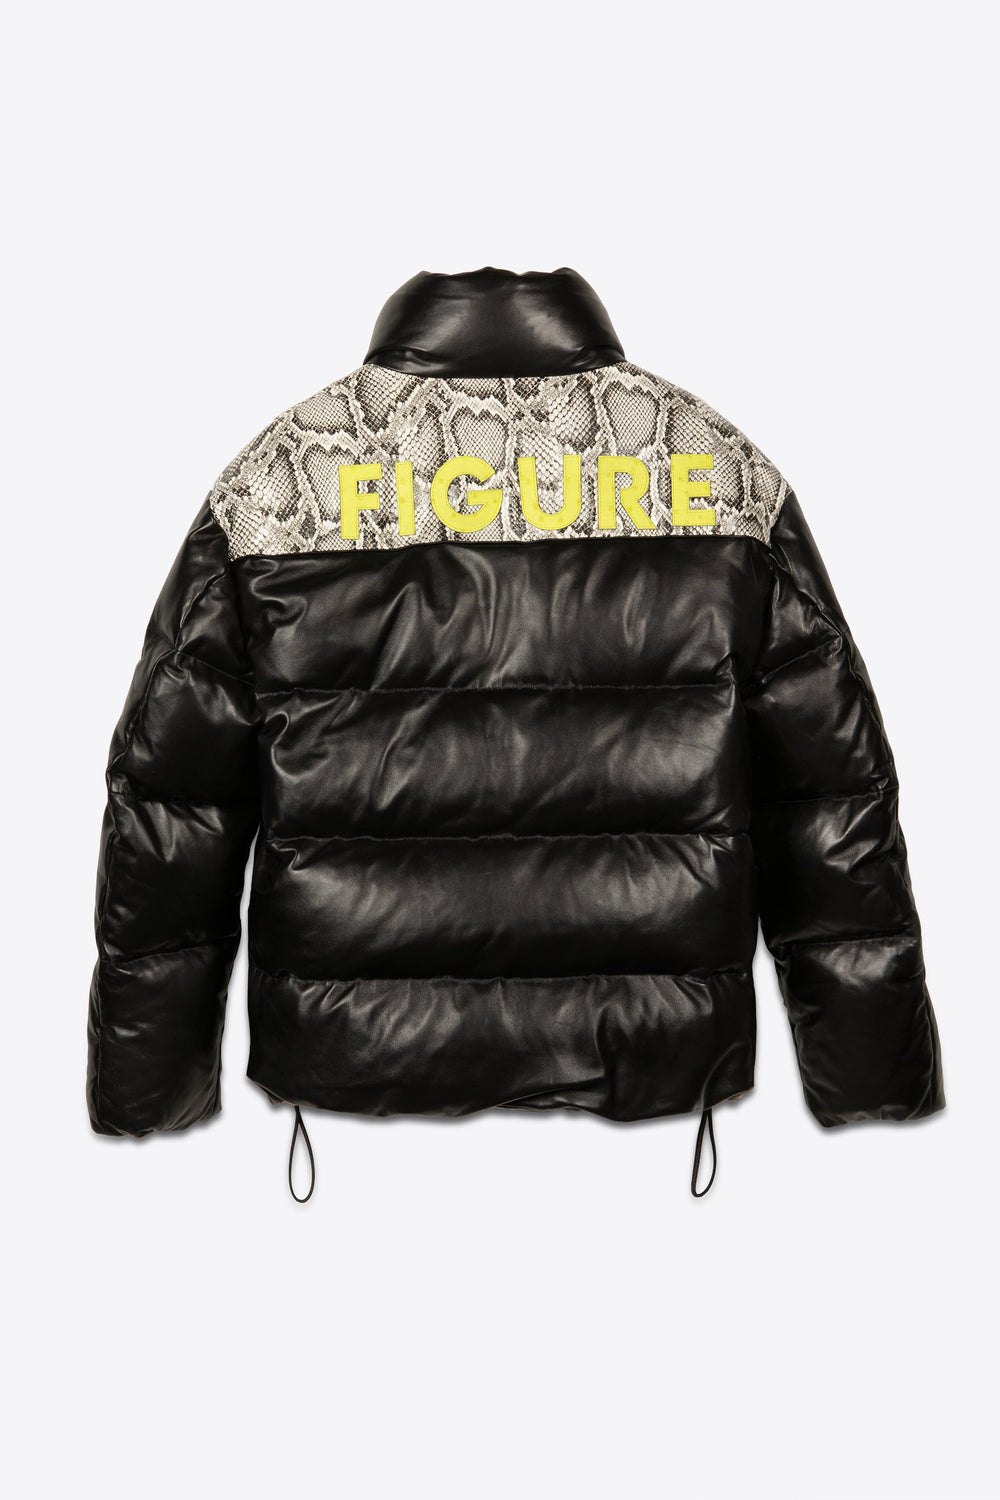 Leather Puffer Black and White Python